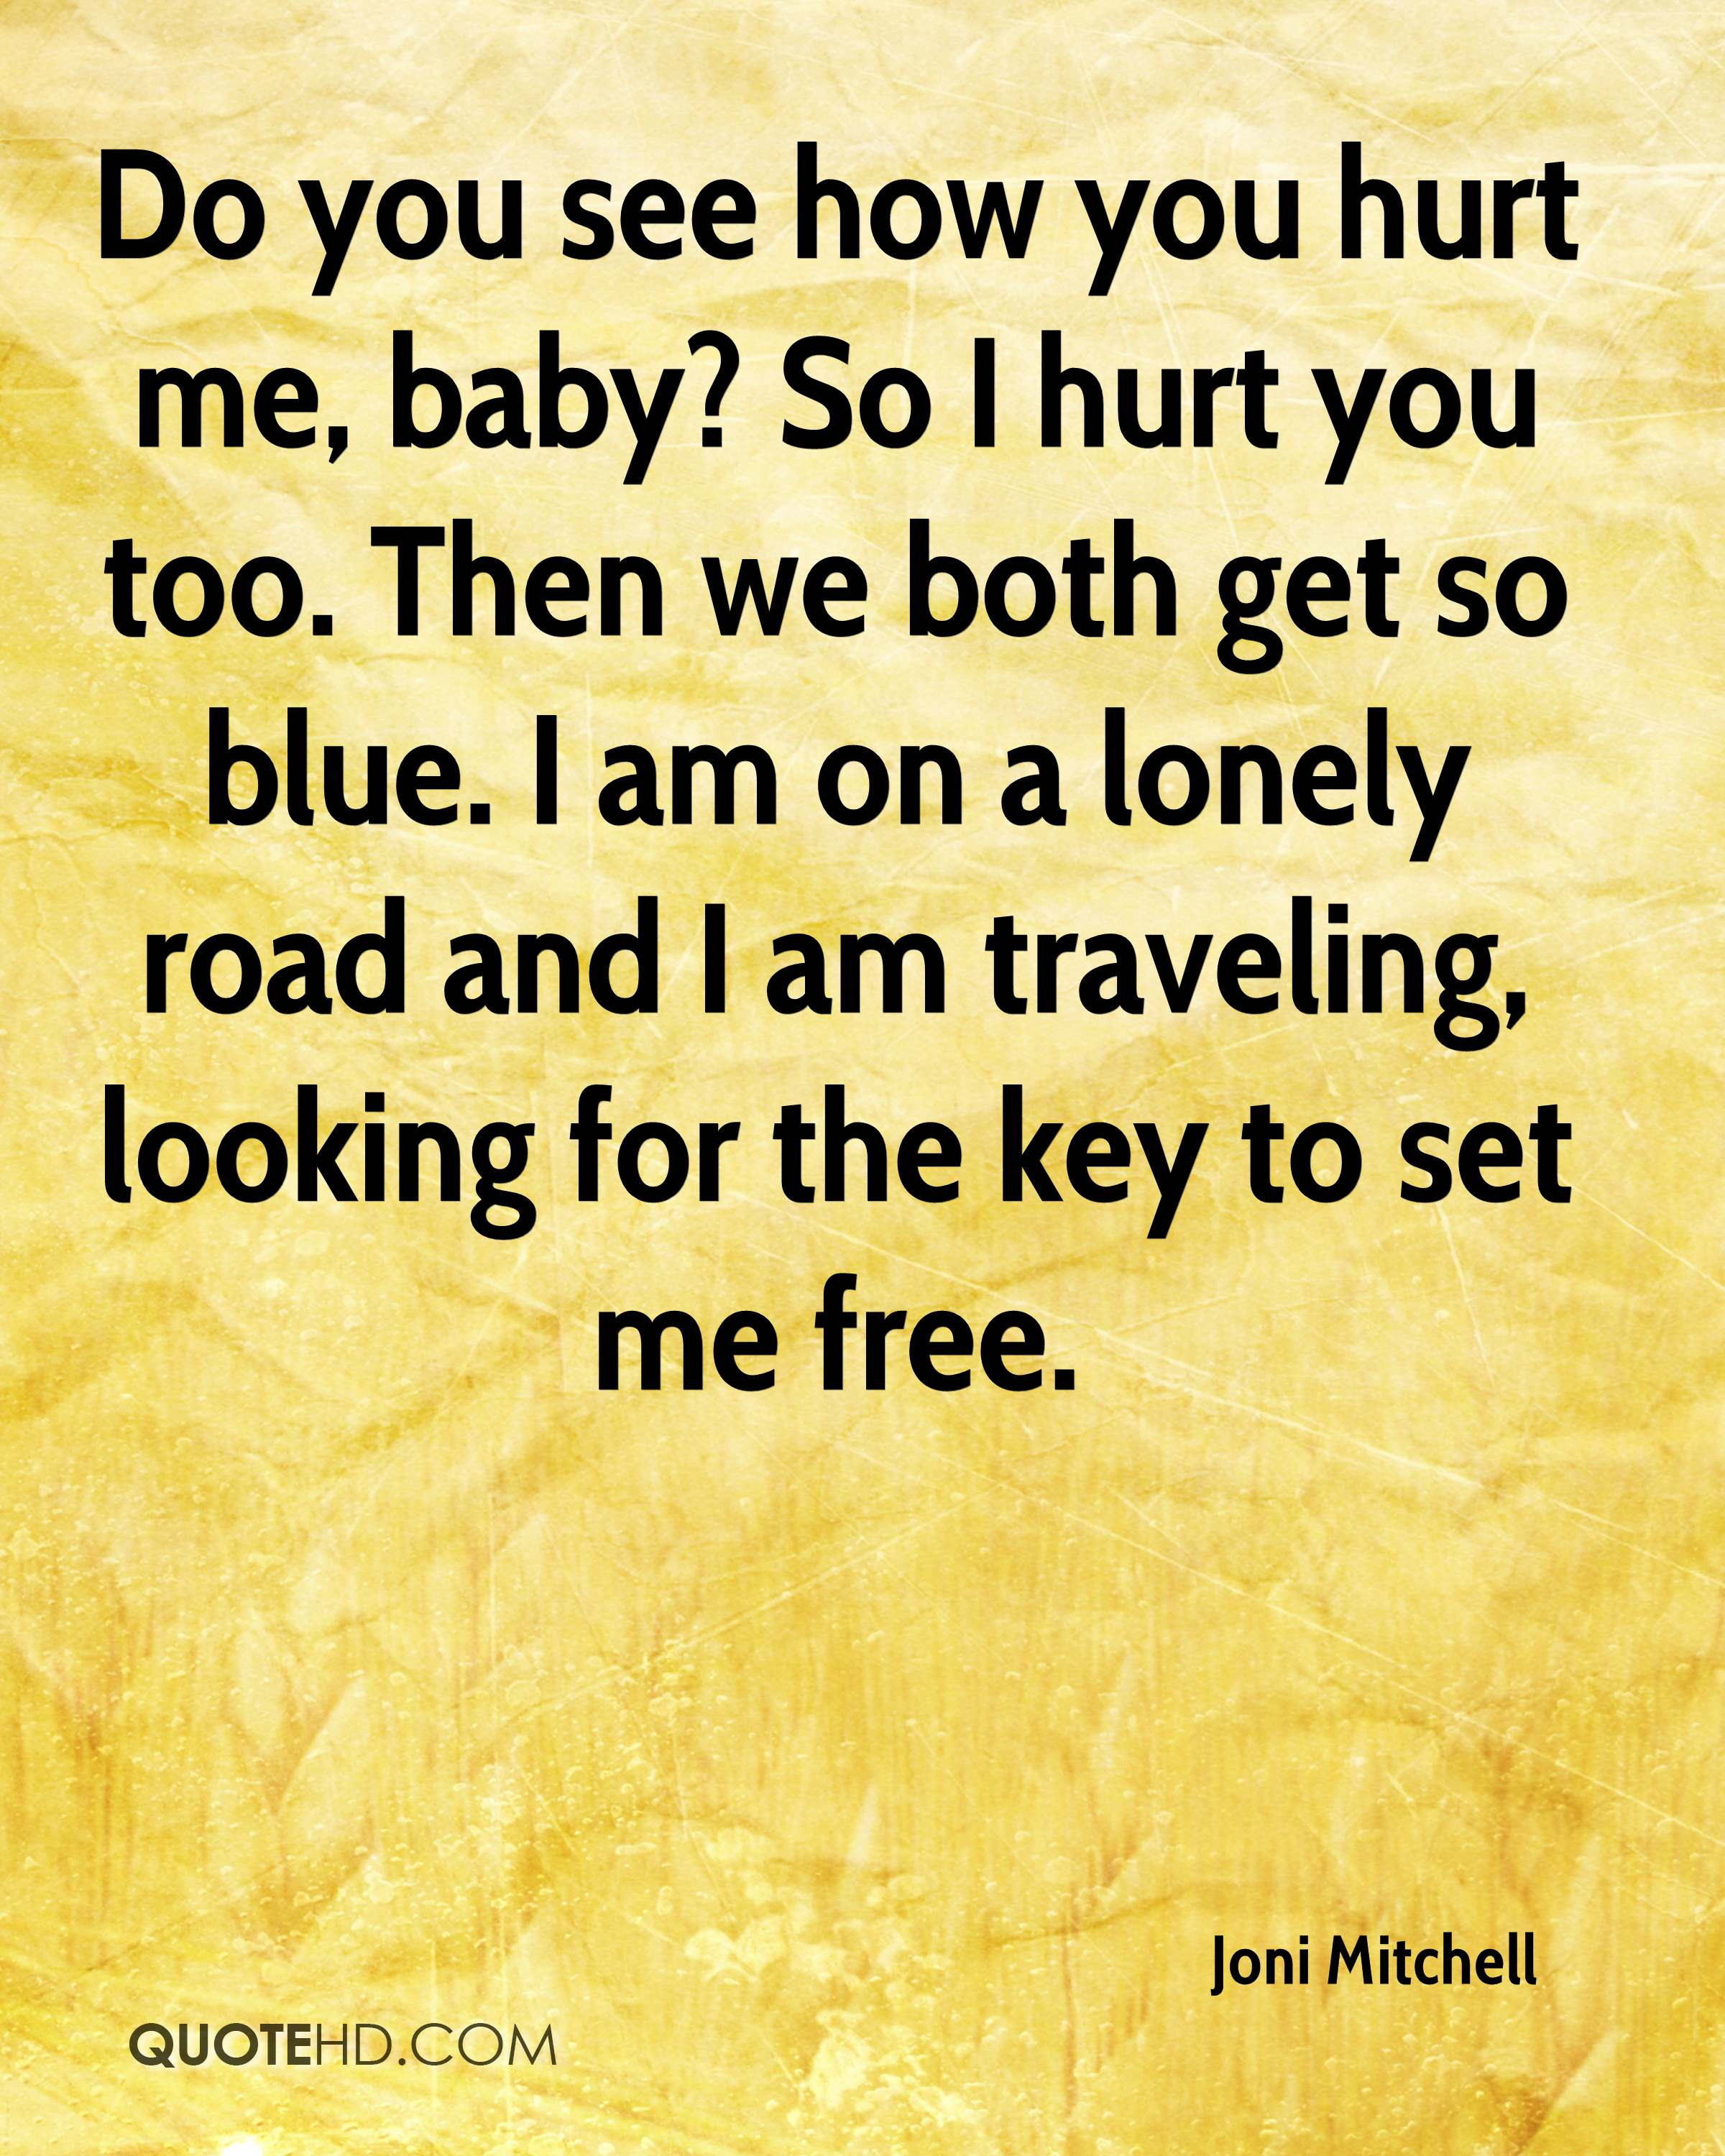 Do you see how you hurt me, baby? So I hurt you too. Then we both get so blue. I am on a lonely road and I am traveling, looking for the key to set me free.